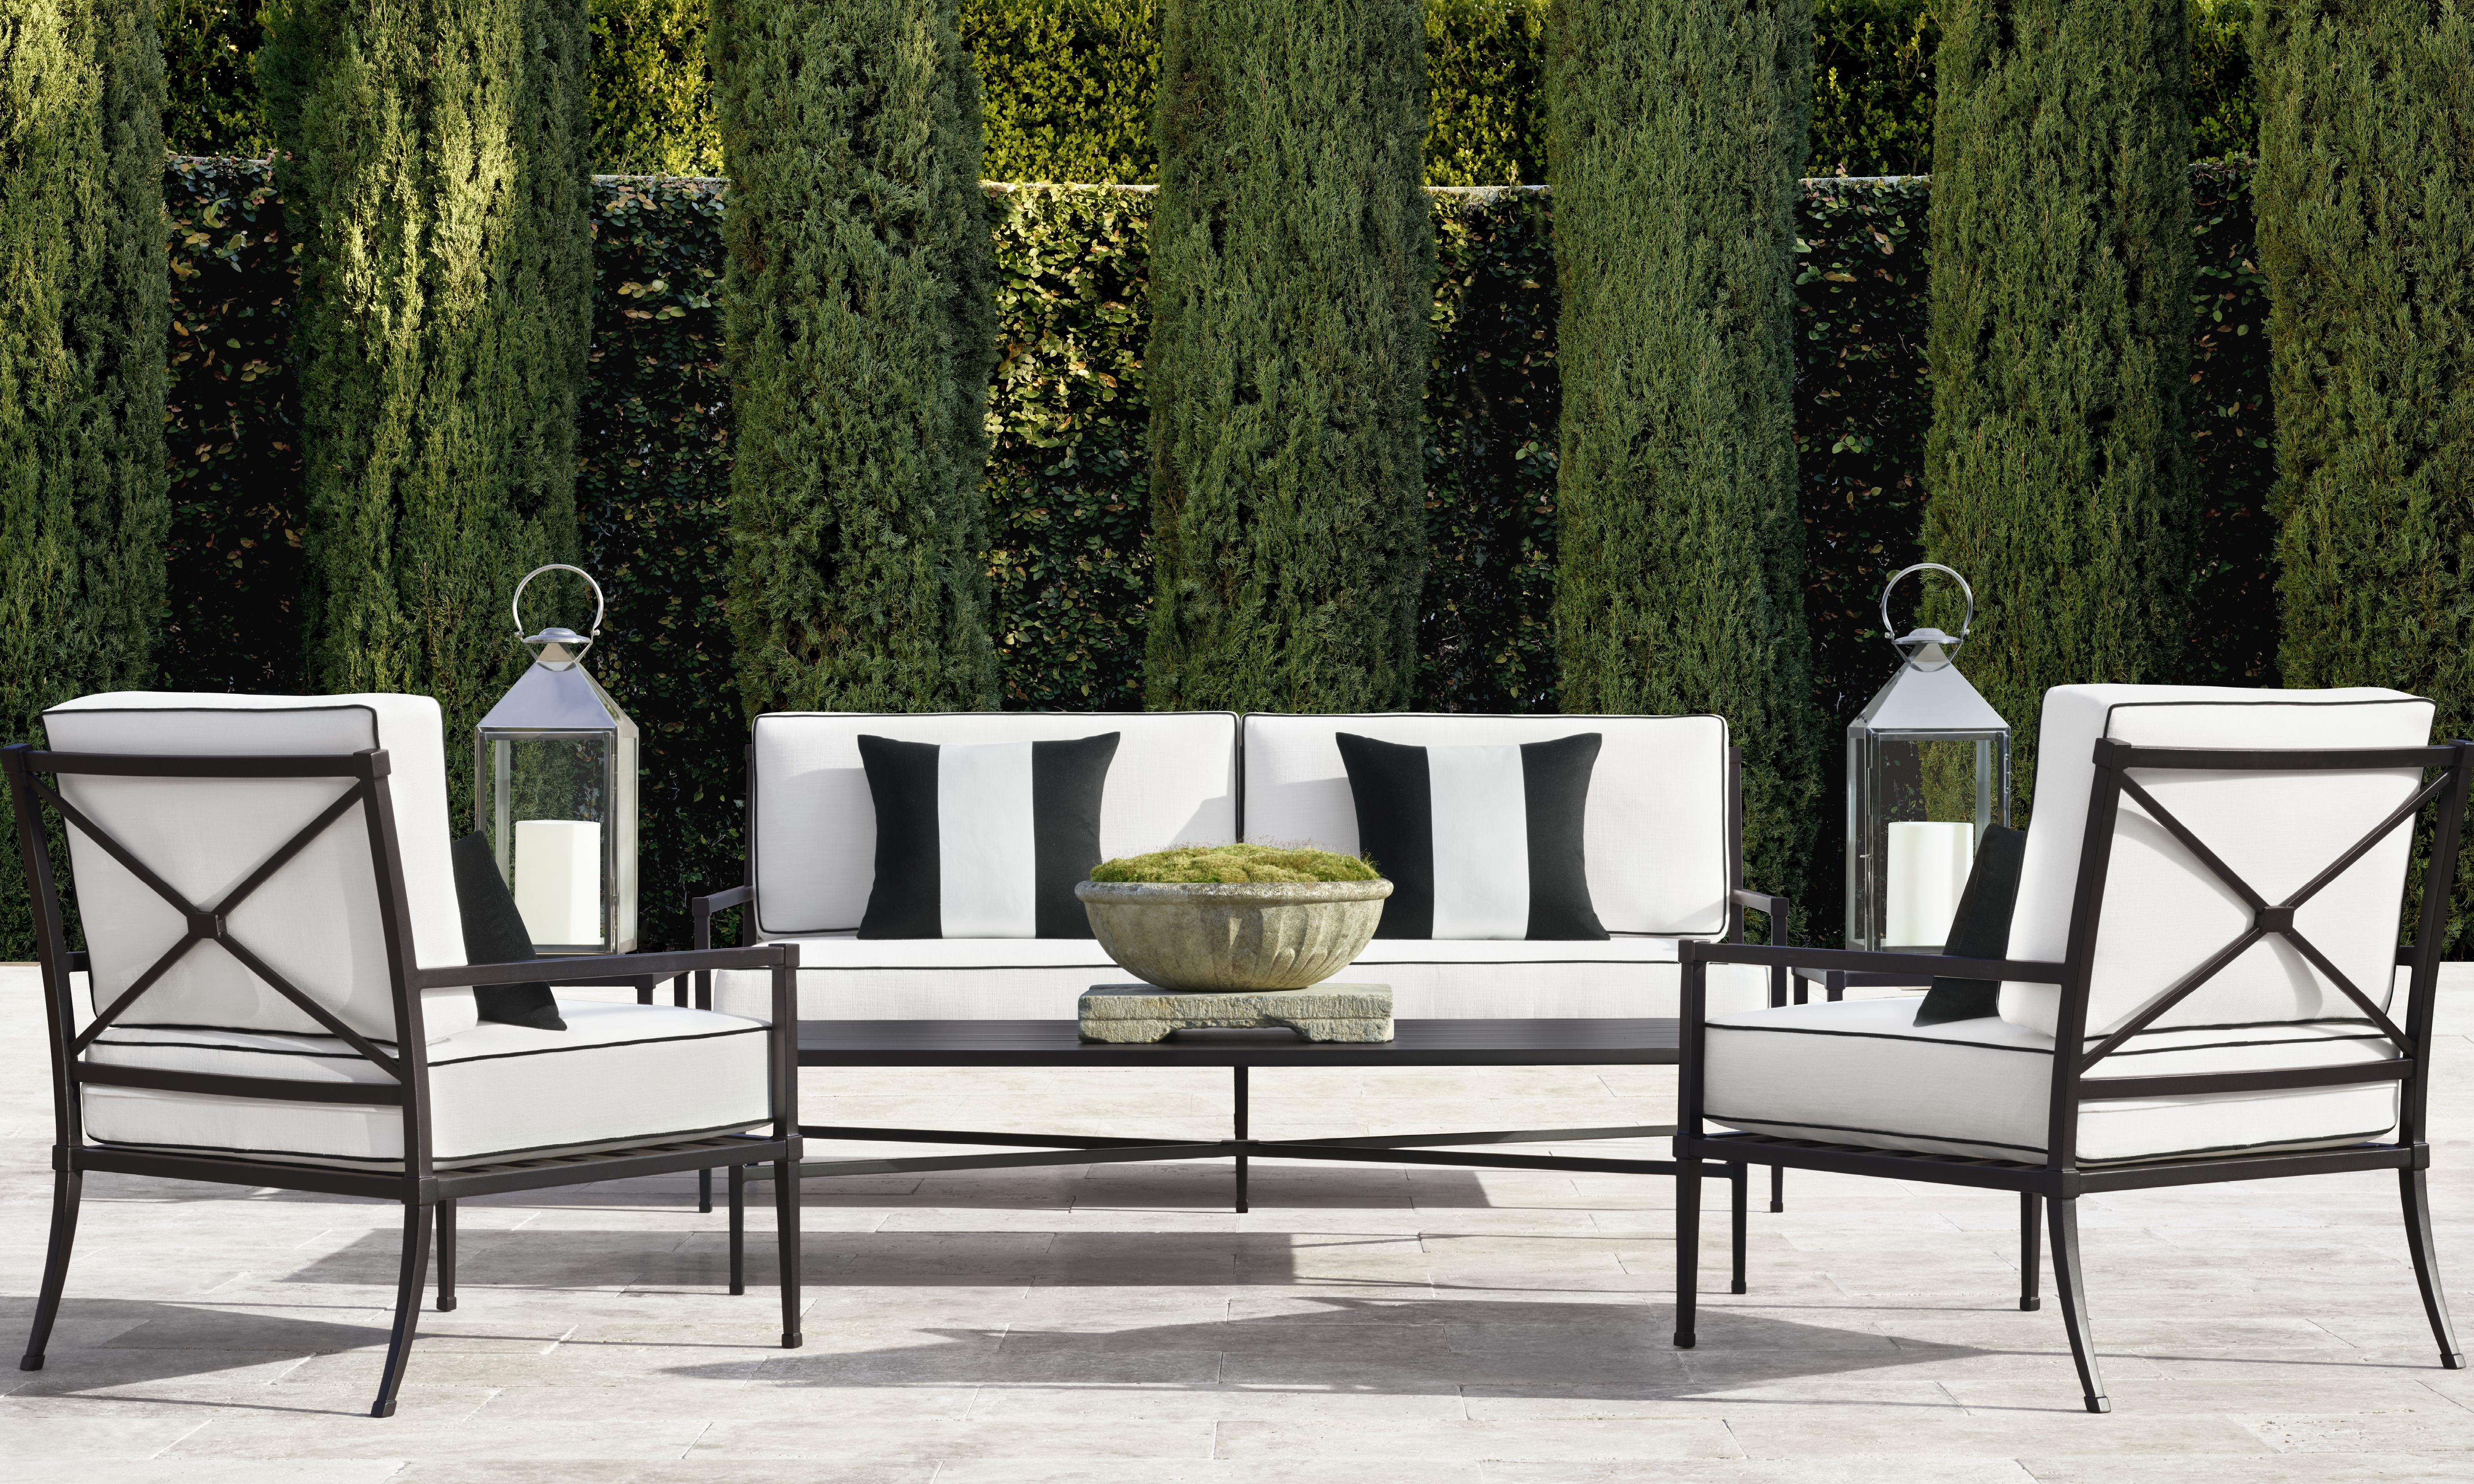 Restoration Hardware Creates A French Inspired Garden Collection With A Hamptons Twist Restoration Hardware Outdoor Metal Outdoor Furniture Outdoor Decor